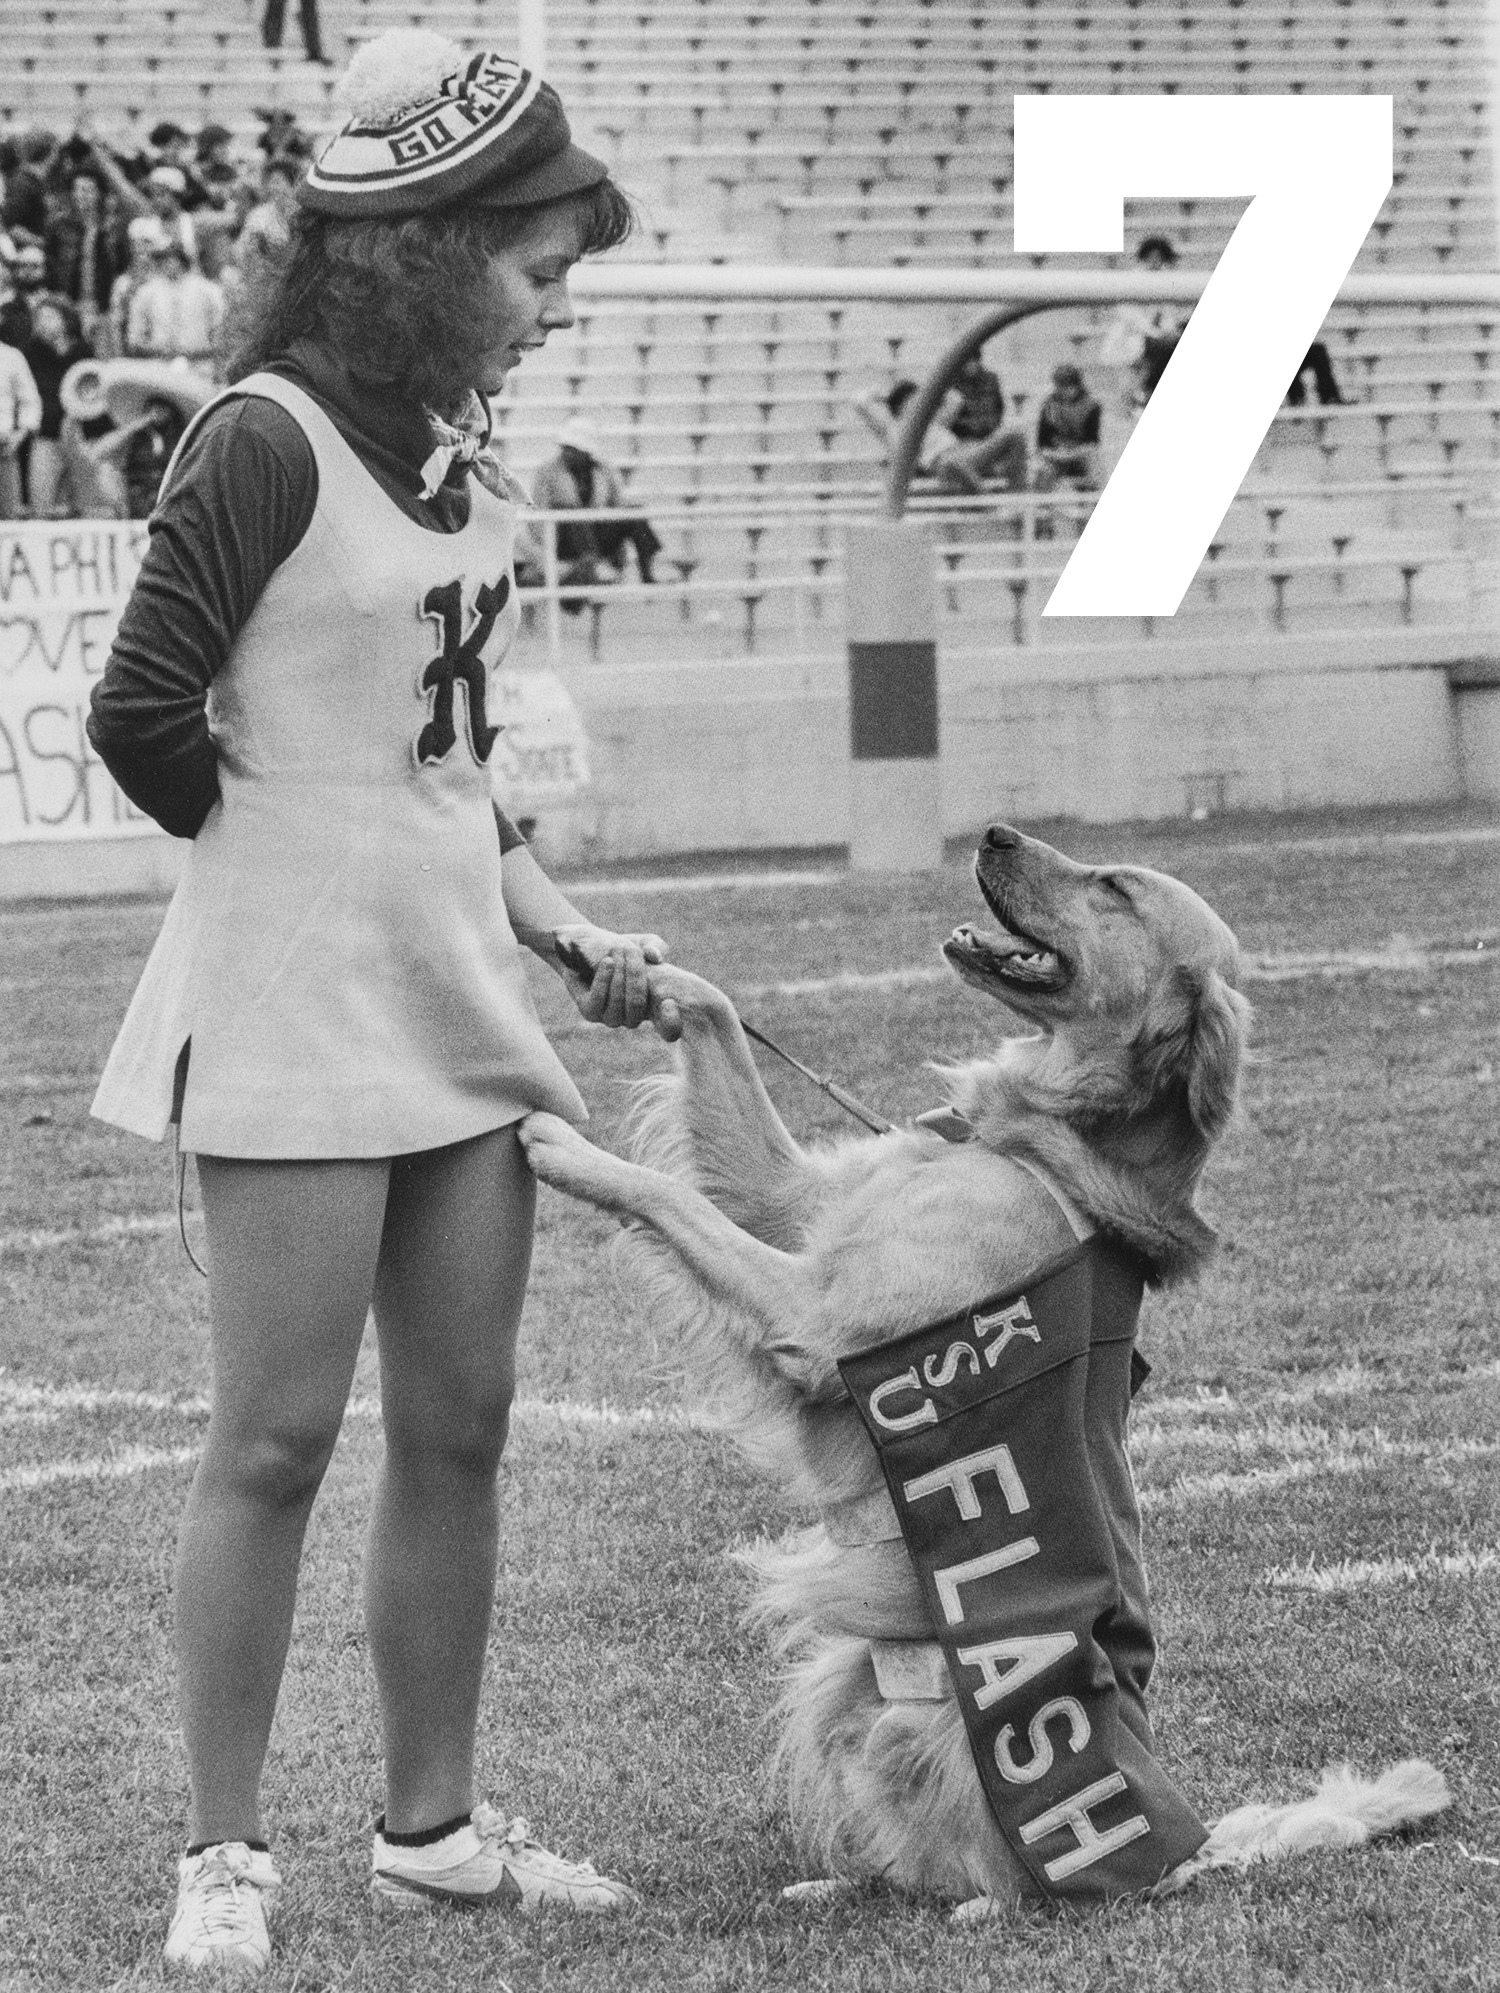 Mac the Flash is a Golden Retriever who acted as the mascot in the late 70s